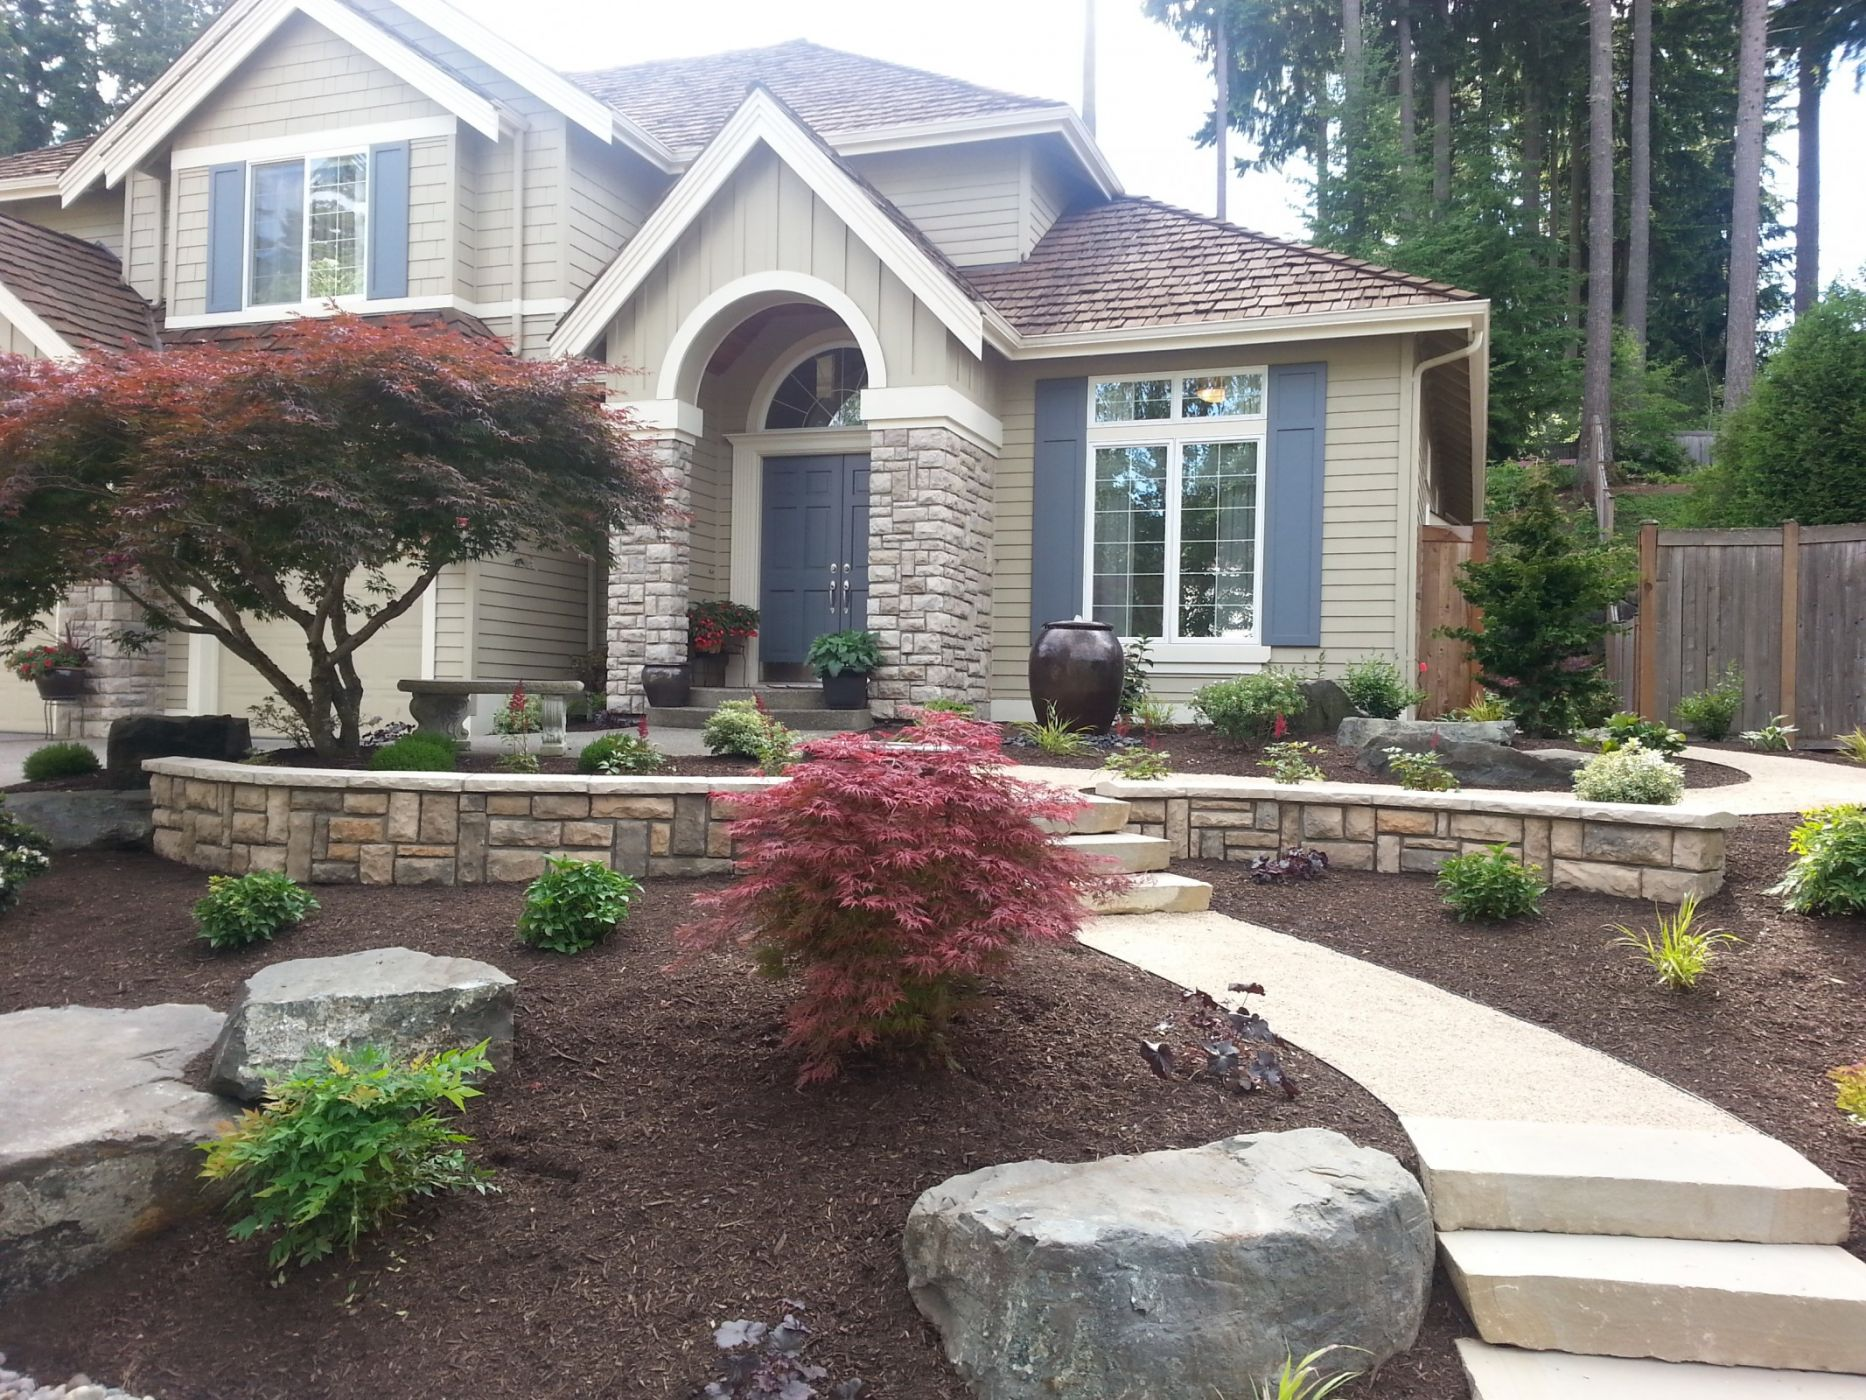 Janika landscaping ideas front yard illinois here for Yard landscaping